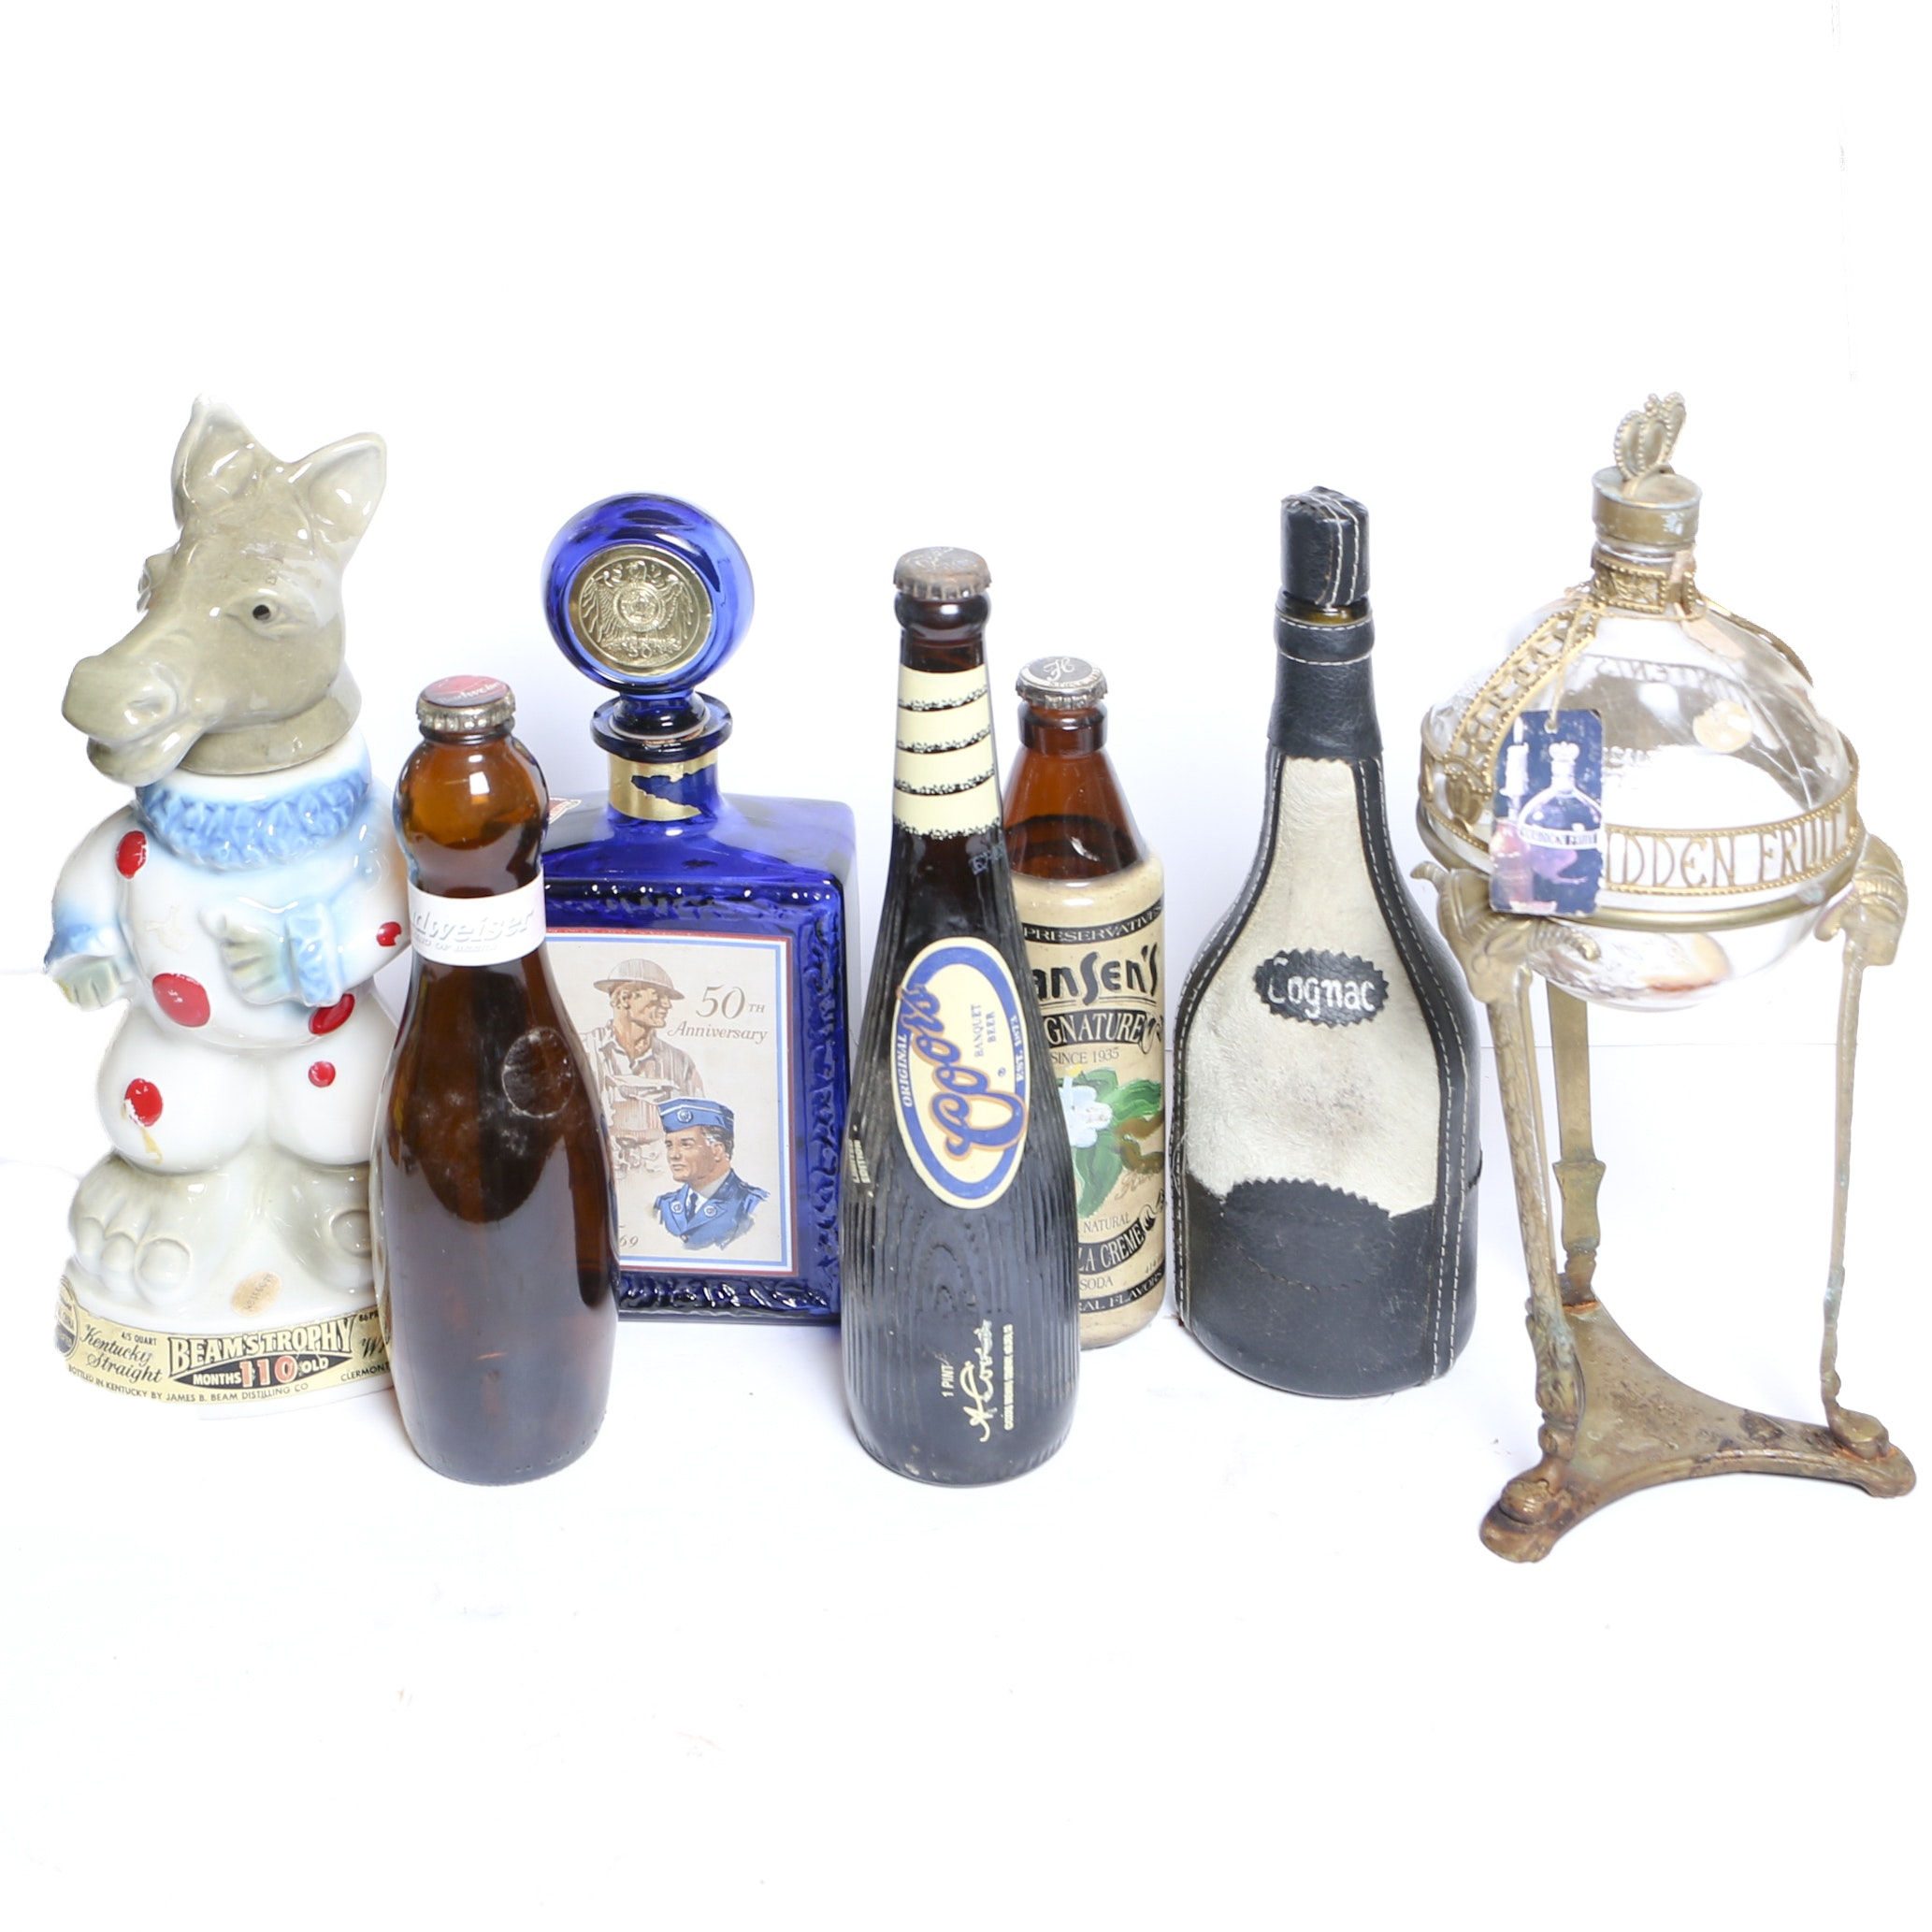 Liquor Decanters and Bottles including Jim Beam